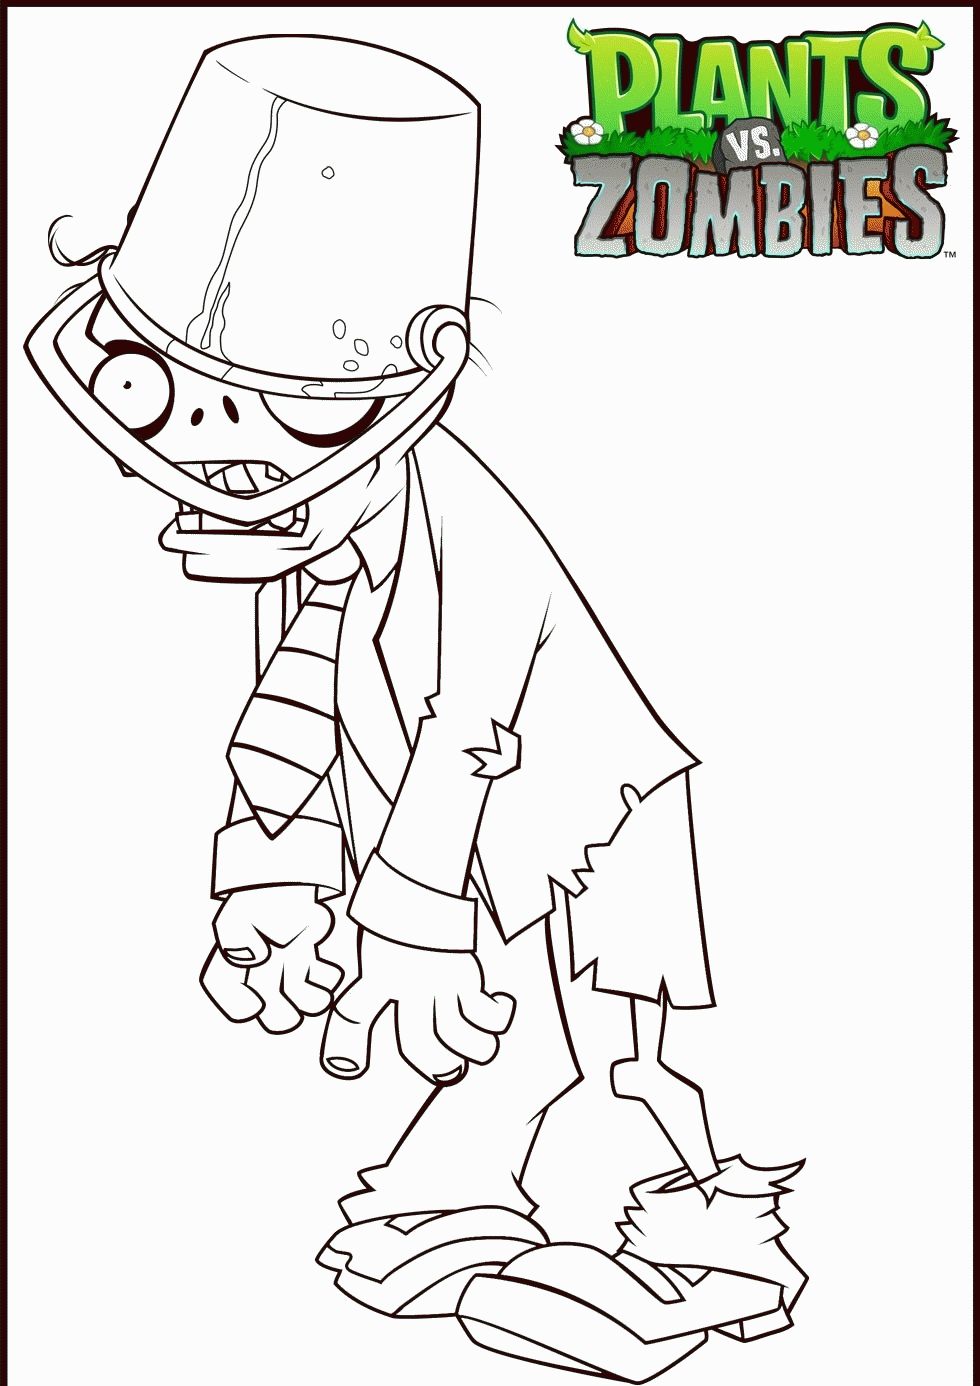 ice skating coloring pages - plants vs zombies garden warfare coloring pages